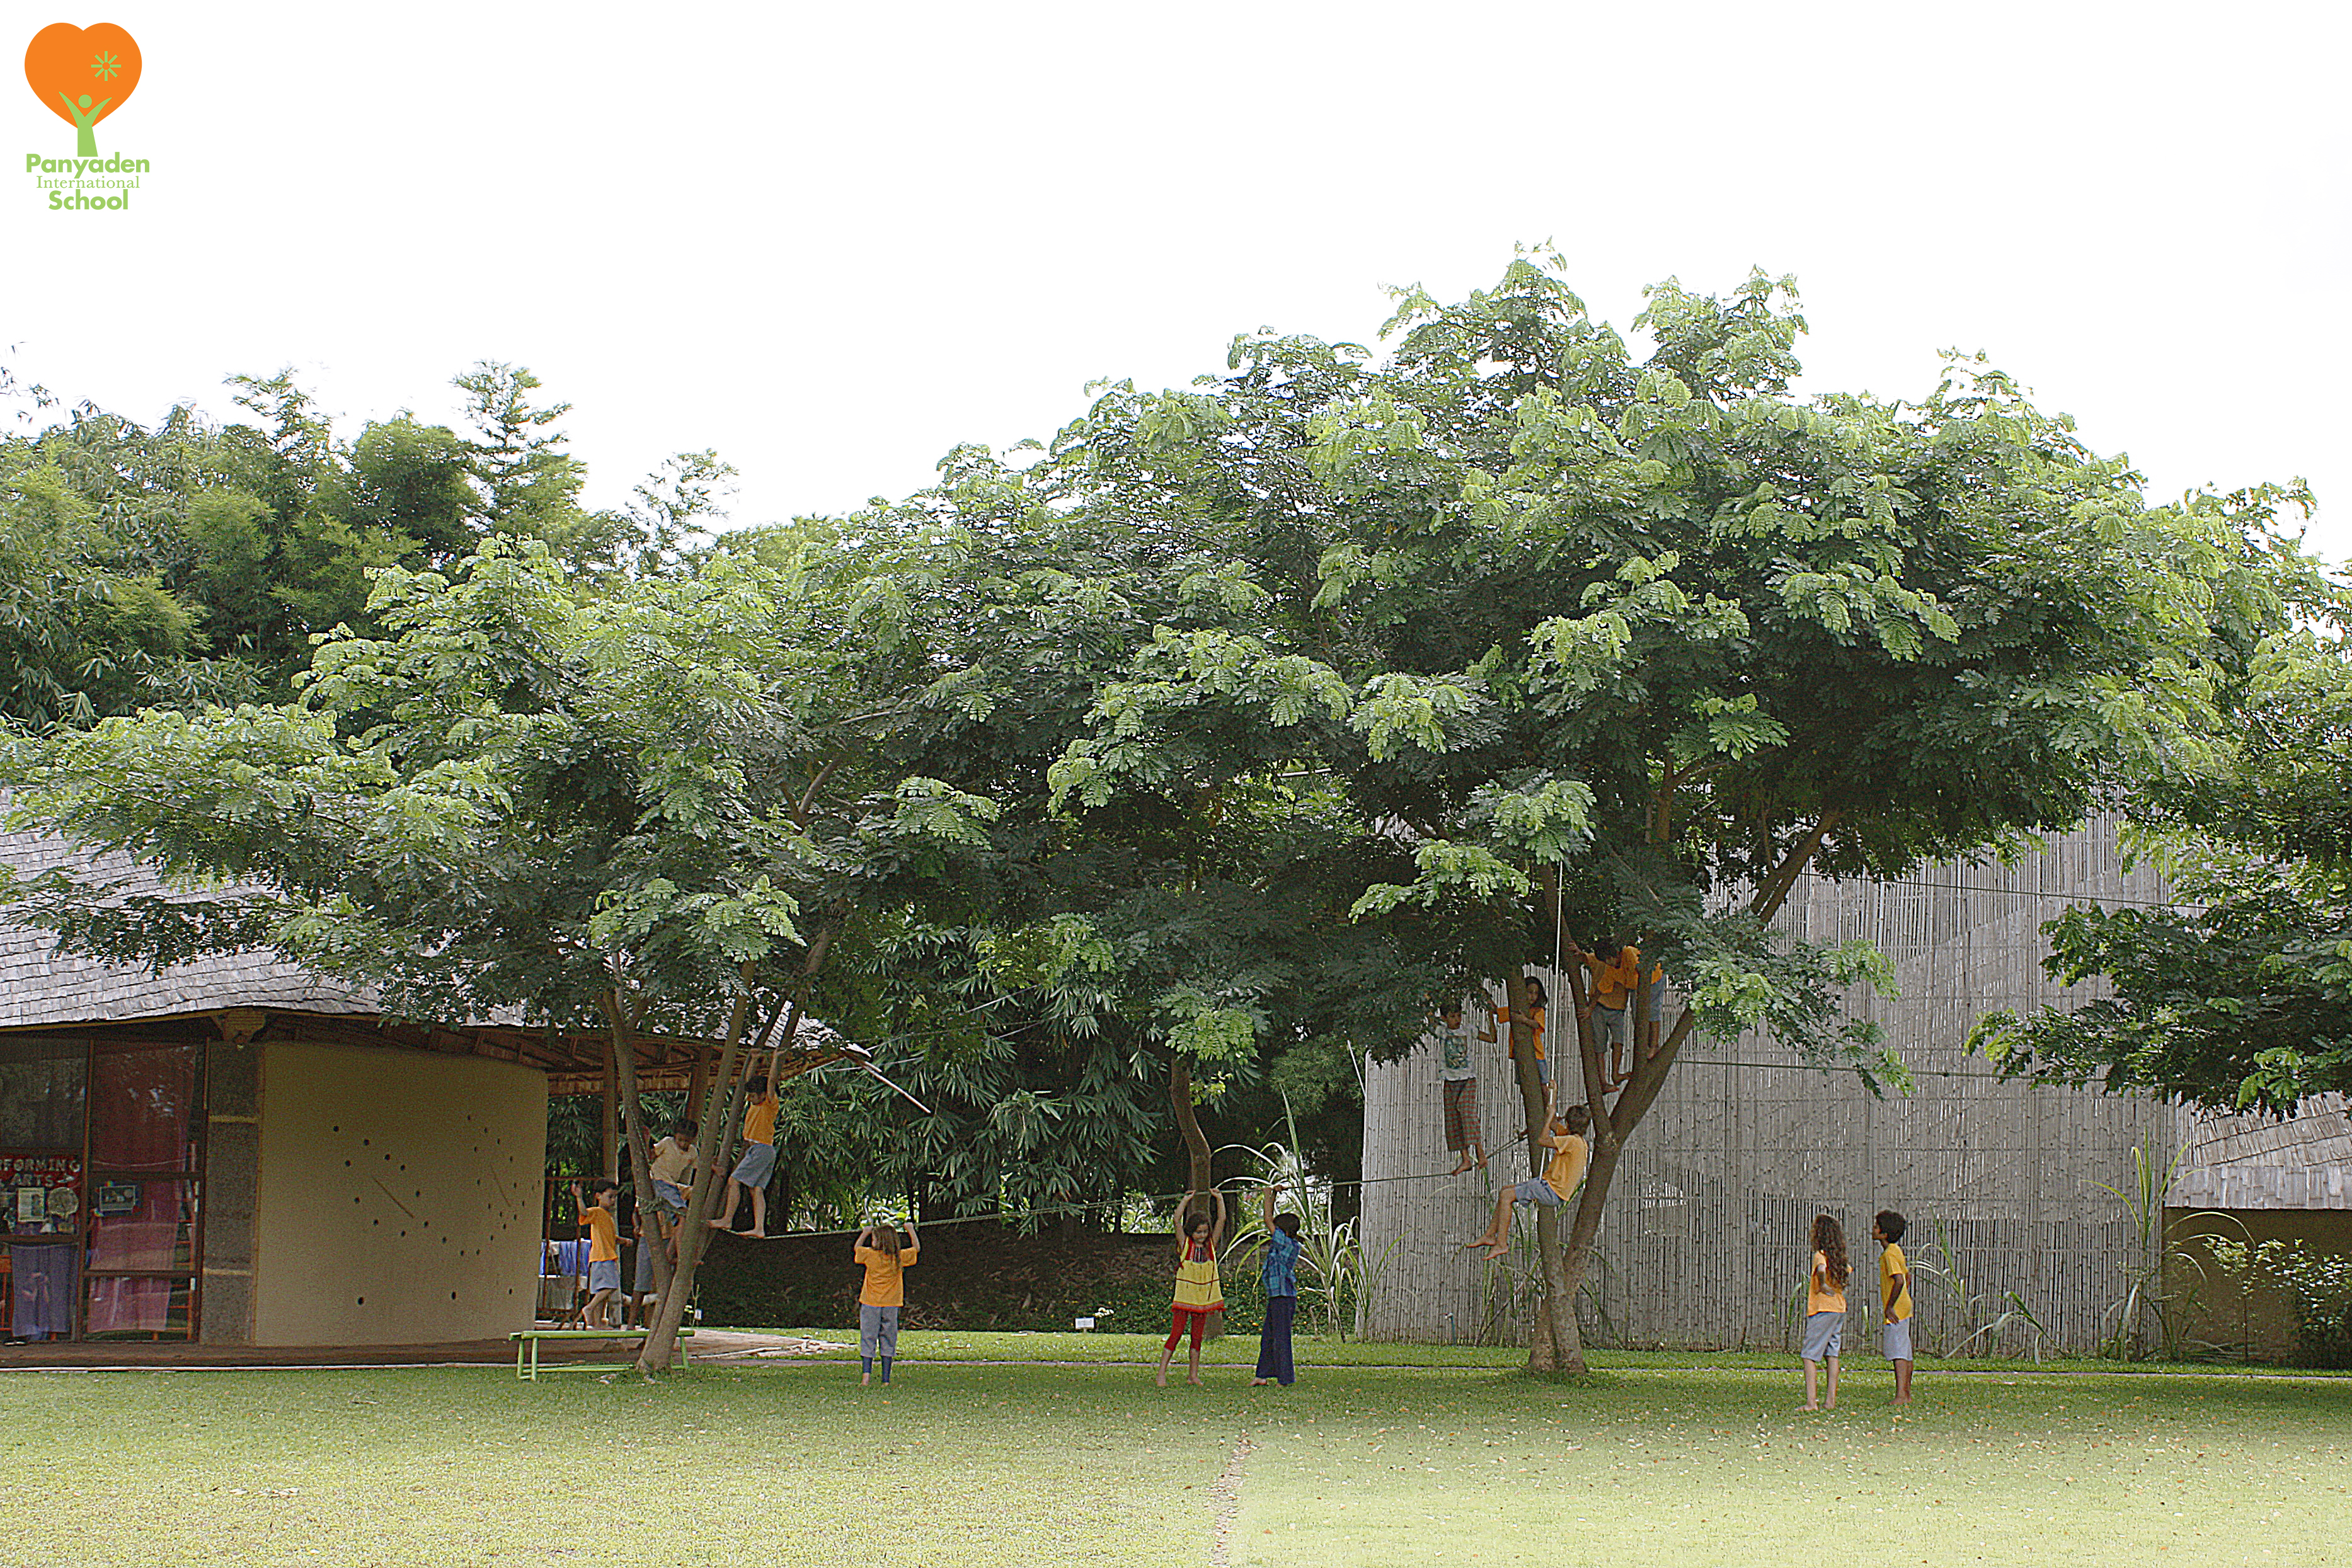 Panyaden students enjoy the trees in our school playground